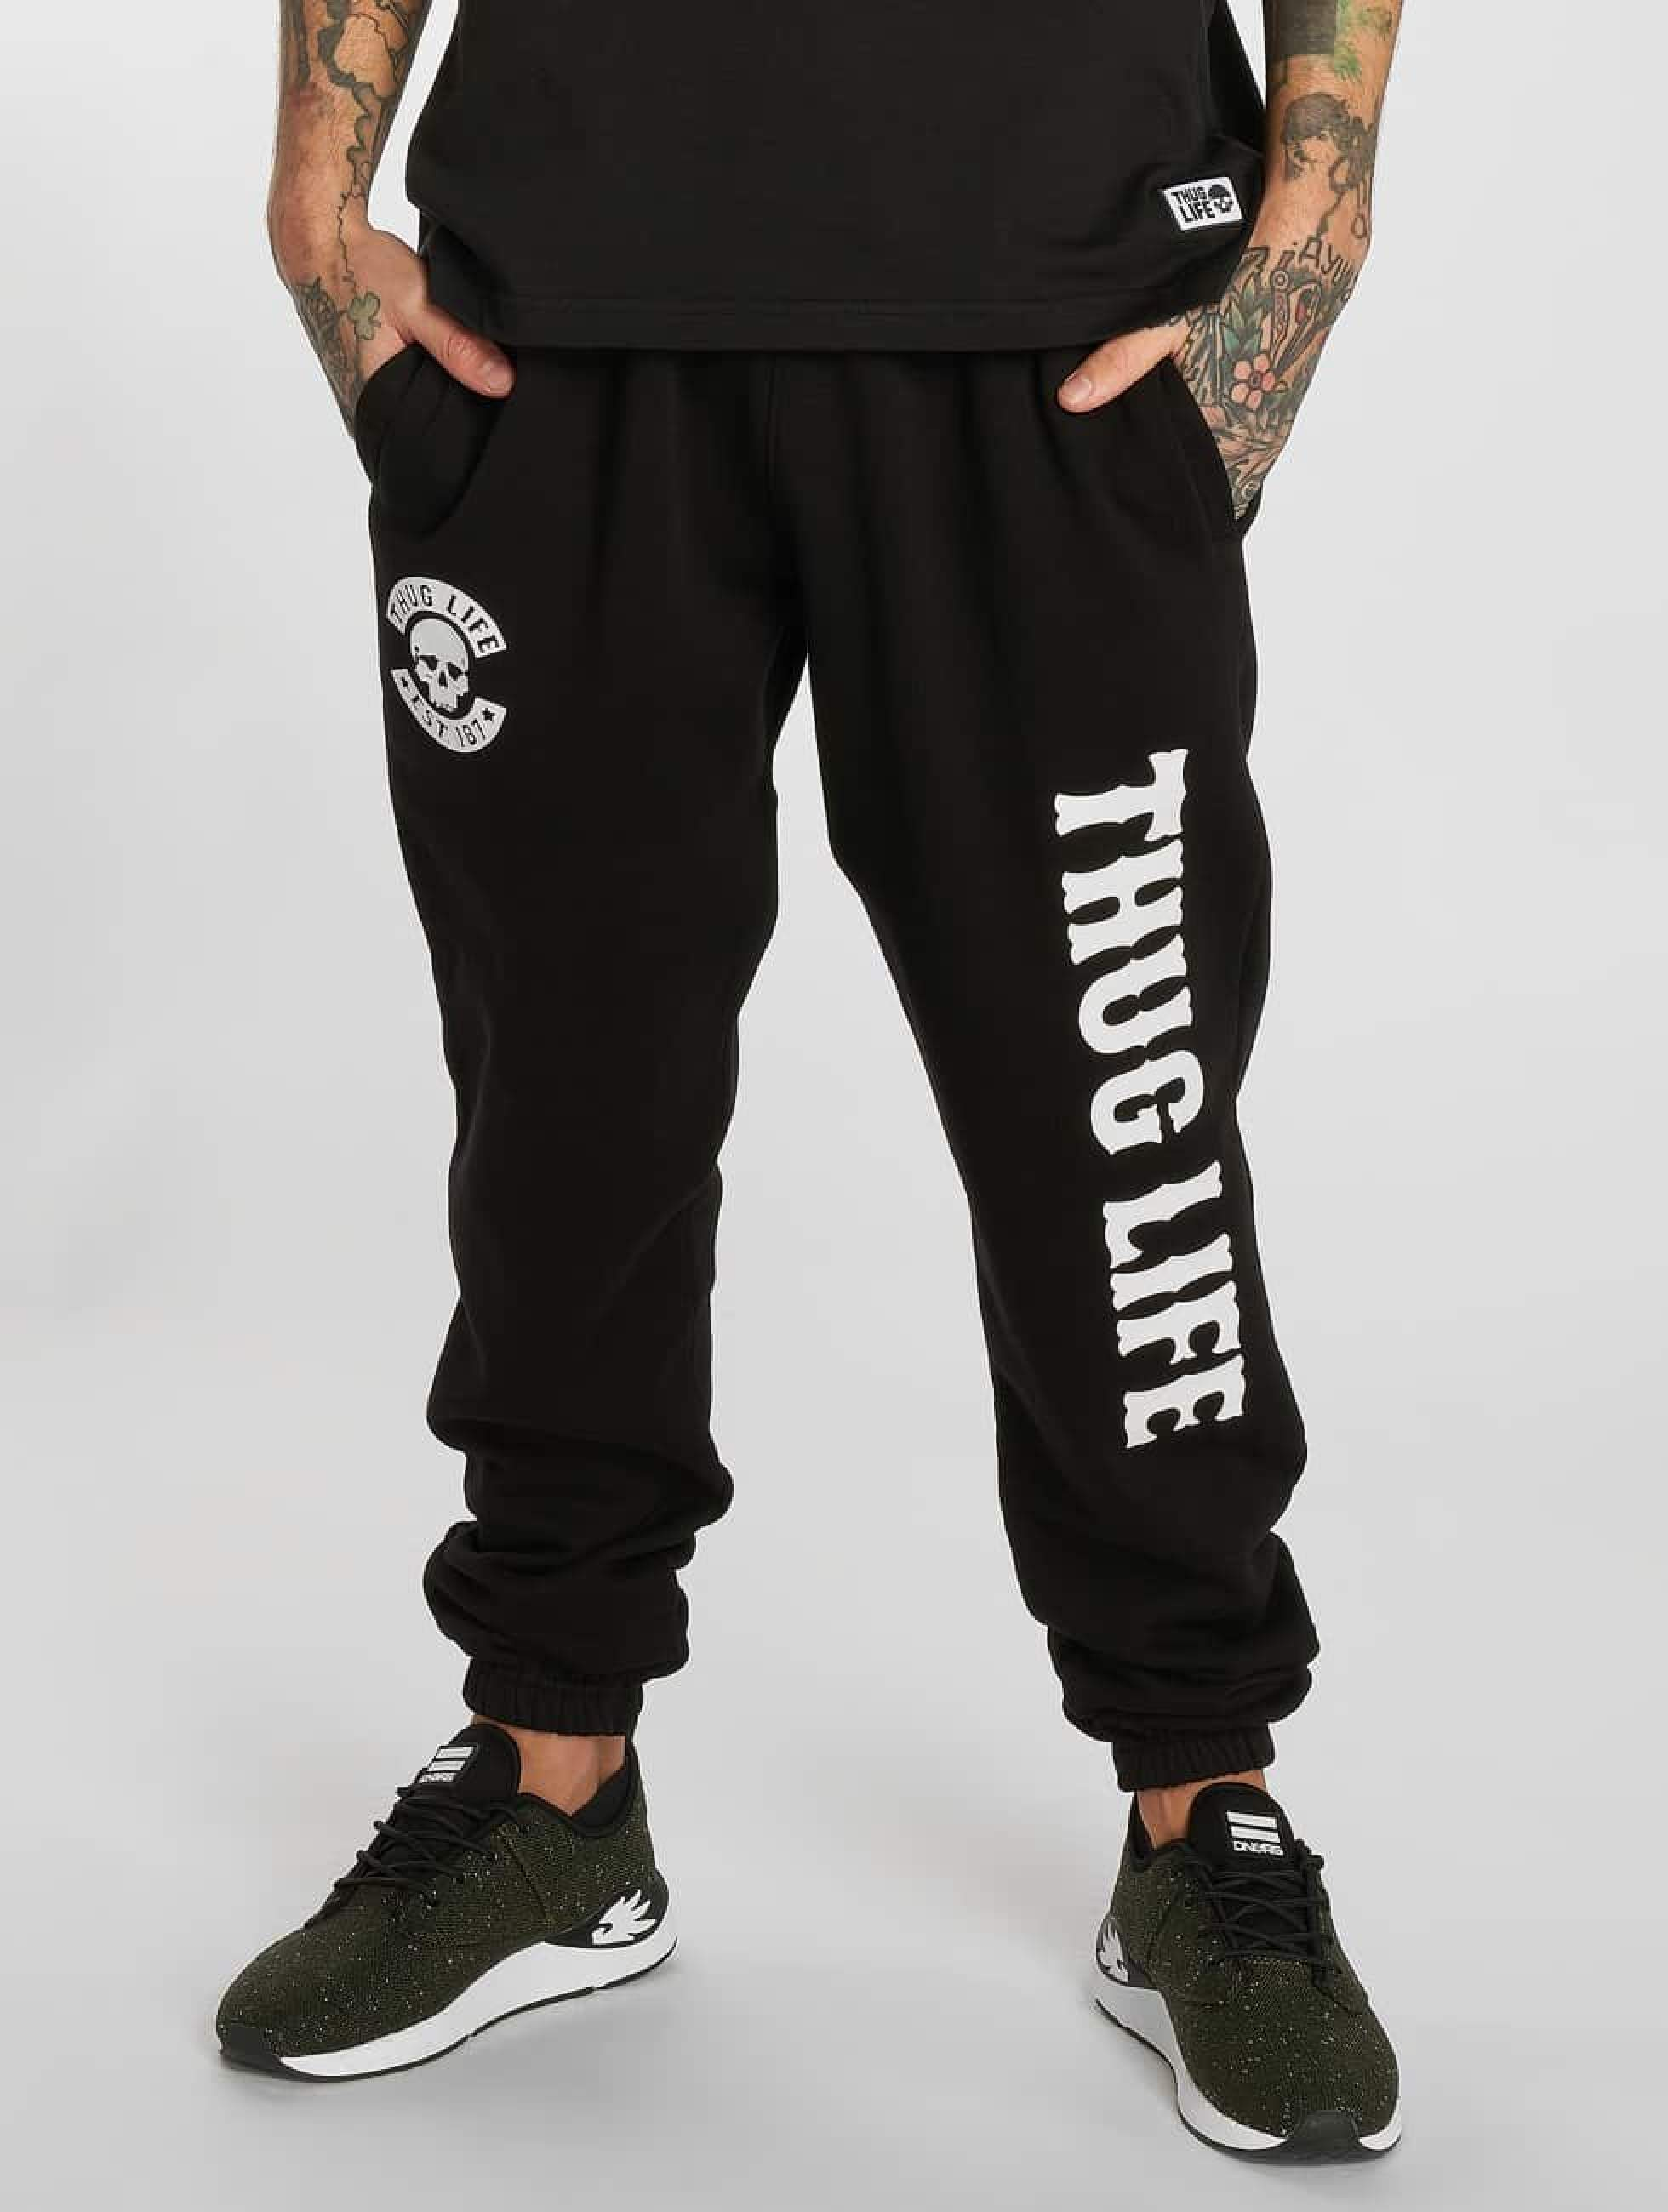 Thug Life / Sweat Pant TLSP124 in black L